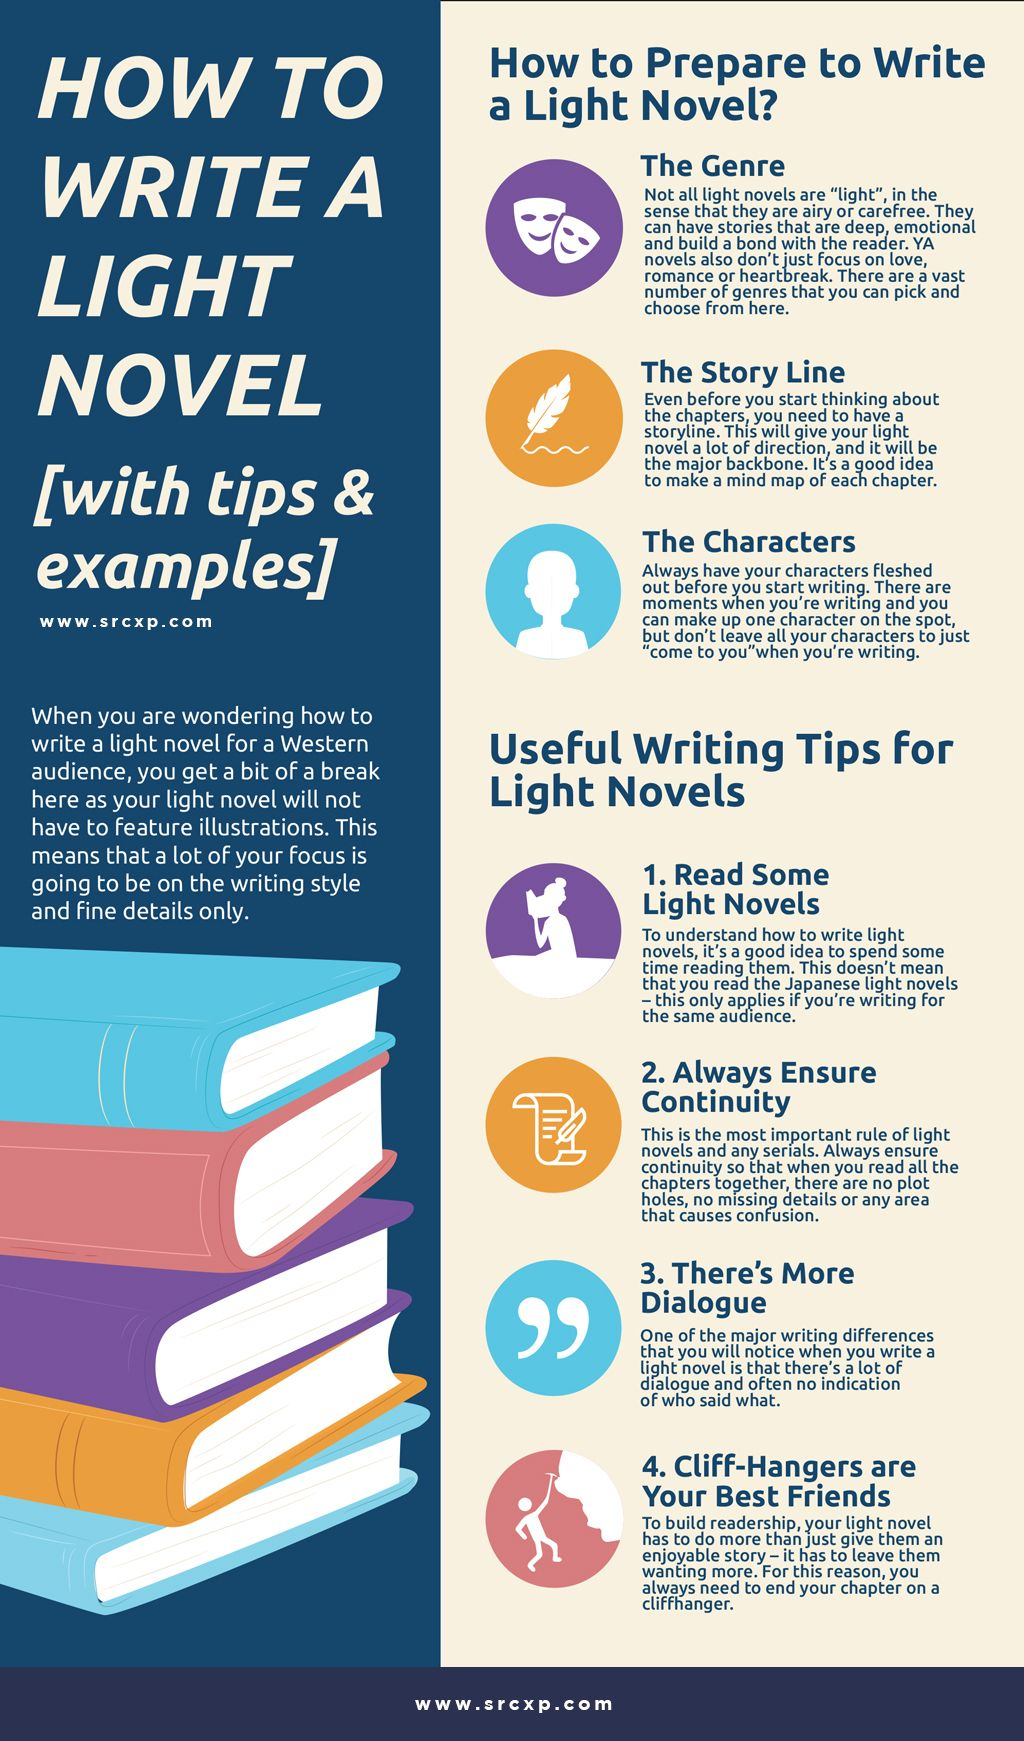 How to Write a Light Novel. Most people often think of light